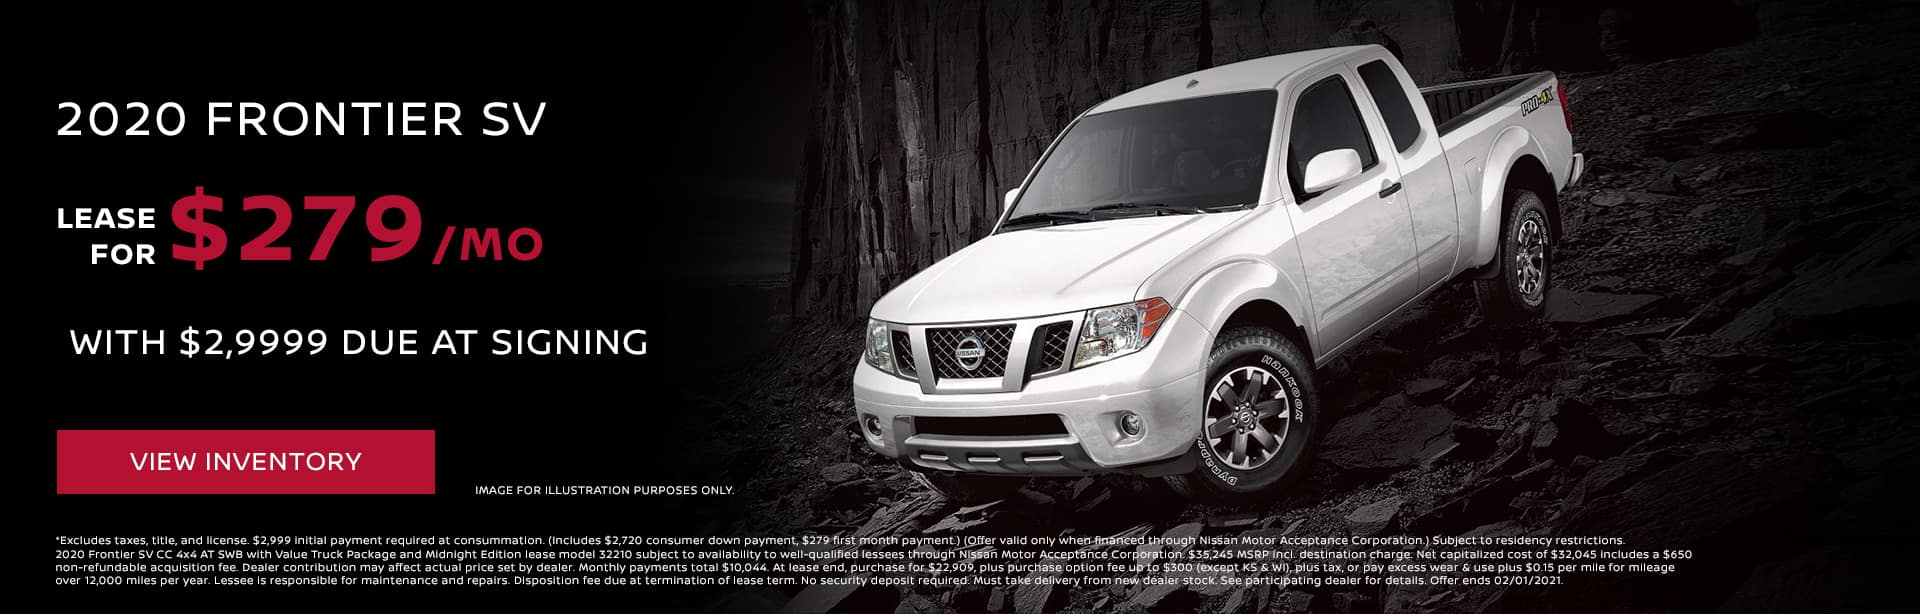 2020 Frontier SV Lease for $279/mo with $2,999 due at signing*